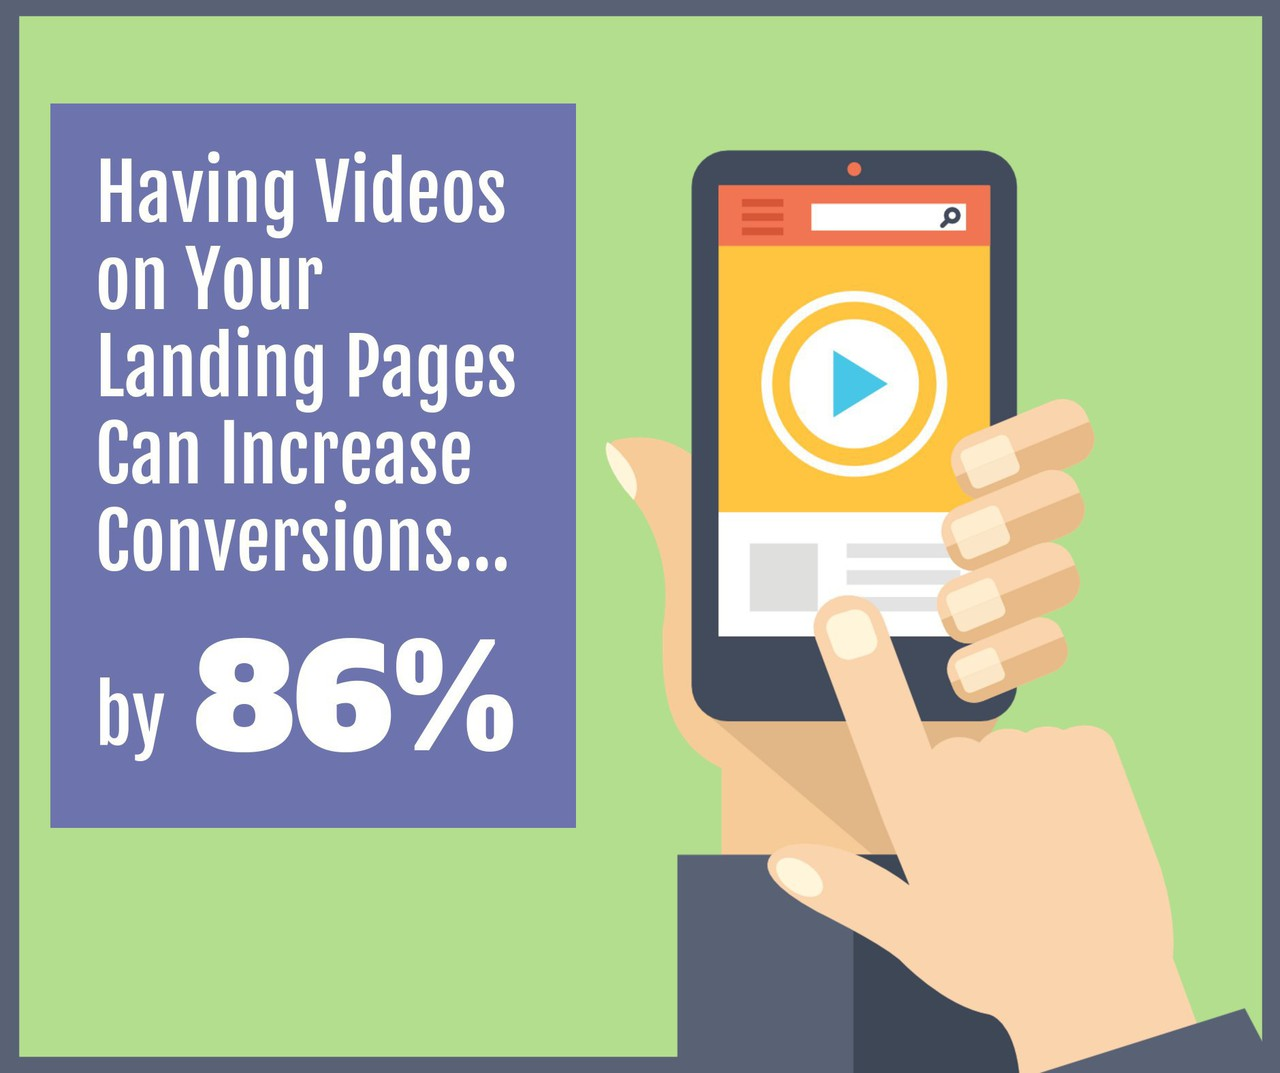 According to Impact (25 Statistics About Landing Pages That Every Business Can Learn From): Having video on your landing pages can increase conversions by 86%